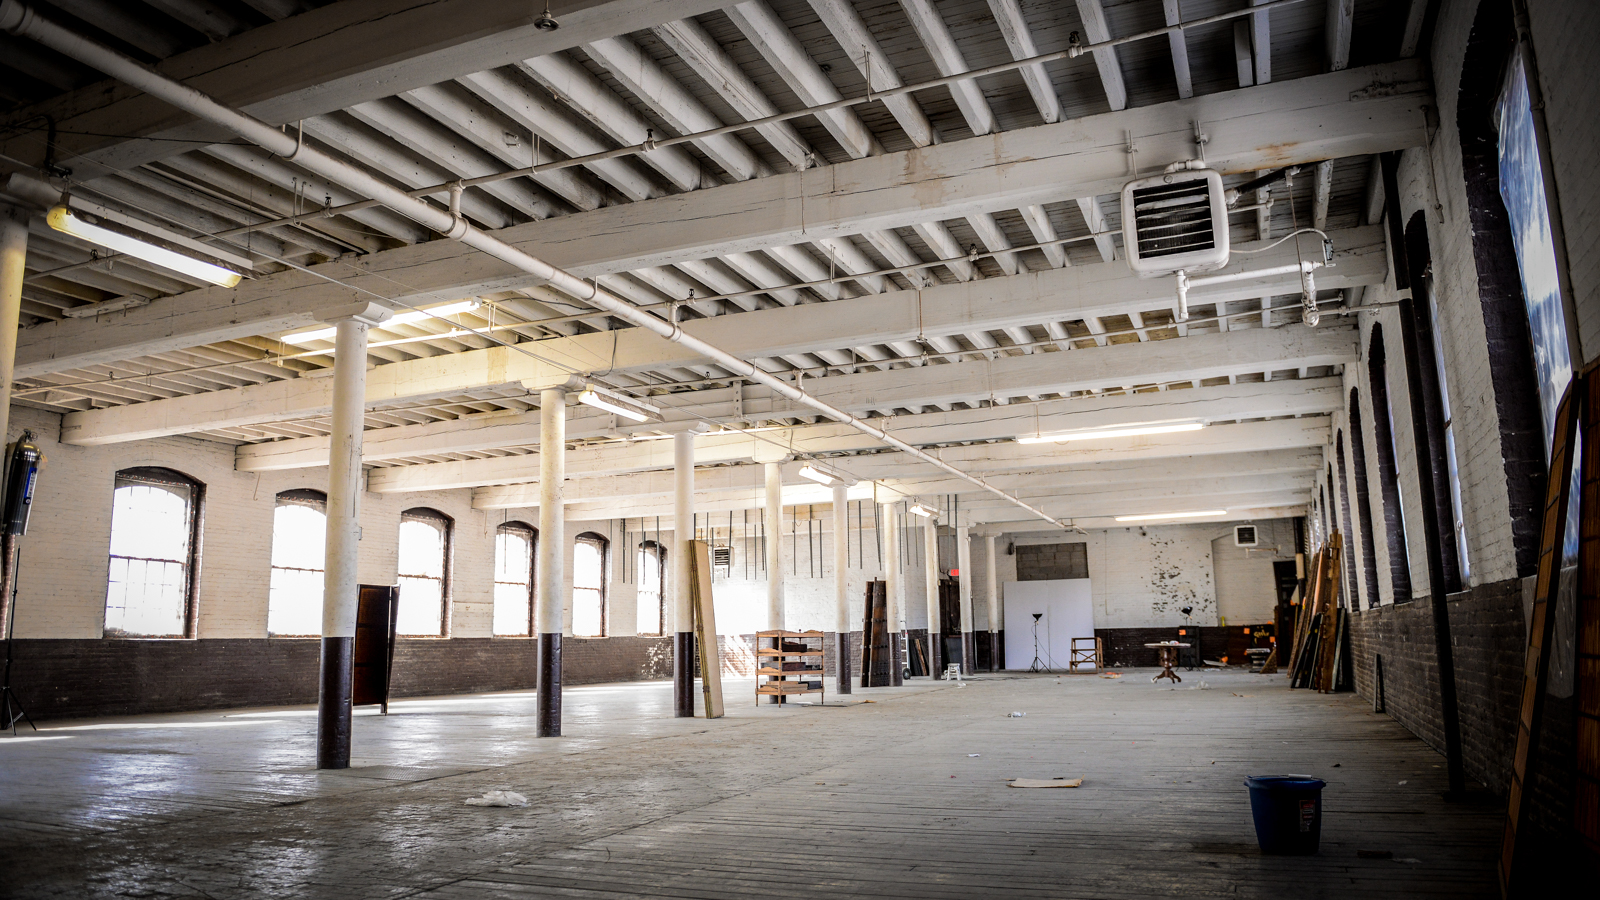 Mayor Spano Announces the new Carpet Mills Arts District